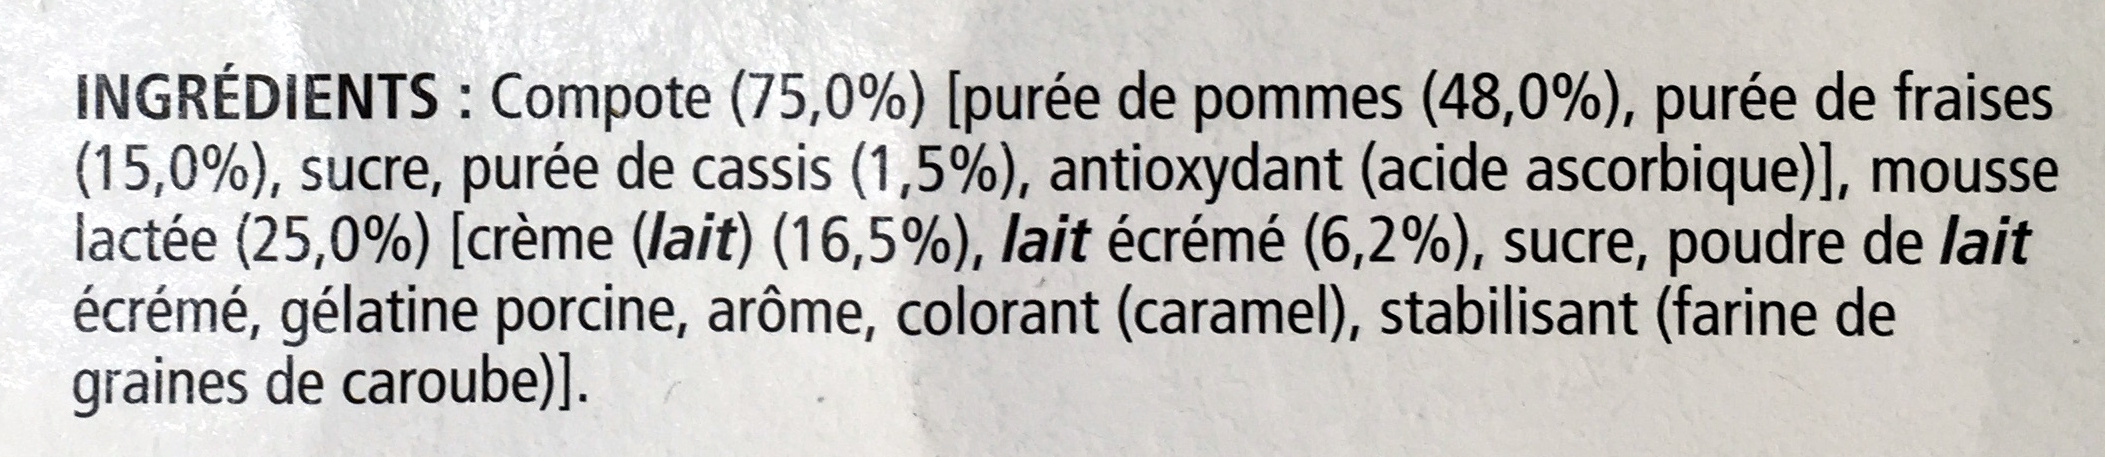 Le Viennois (Compote Pomme Fraise) - Ingredients